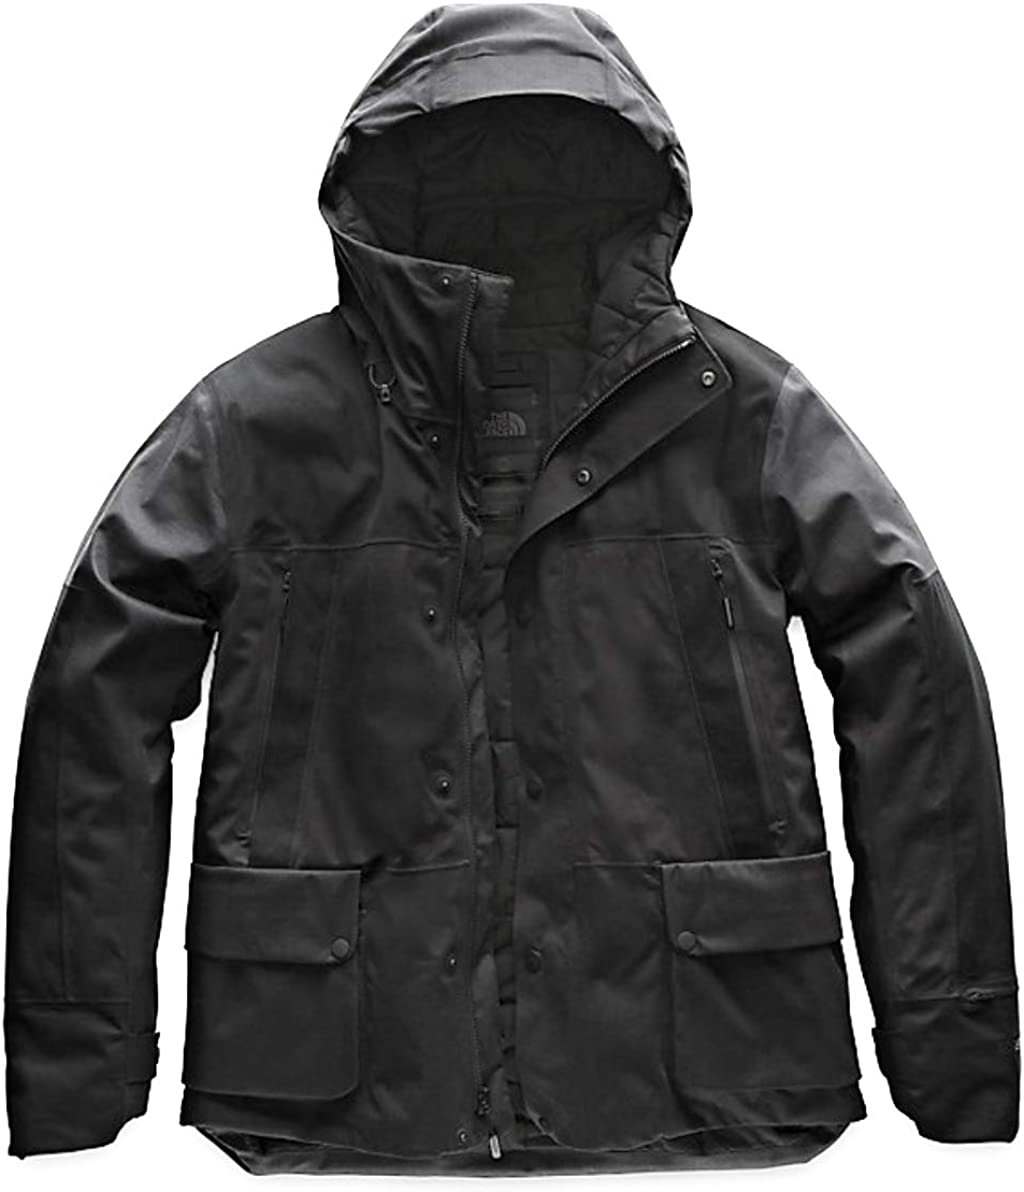 The North Face Men Cryos 2L Mountain Jacket Gore-Tex in Weathered Black -Medium